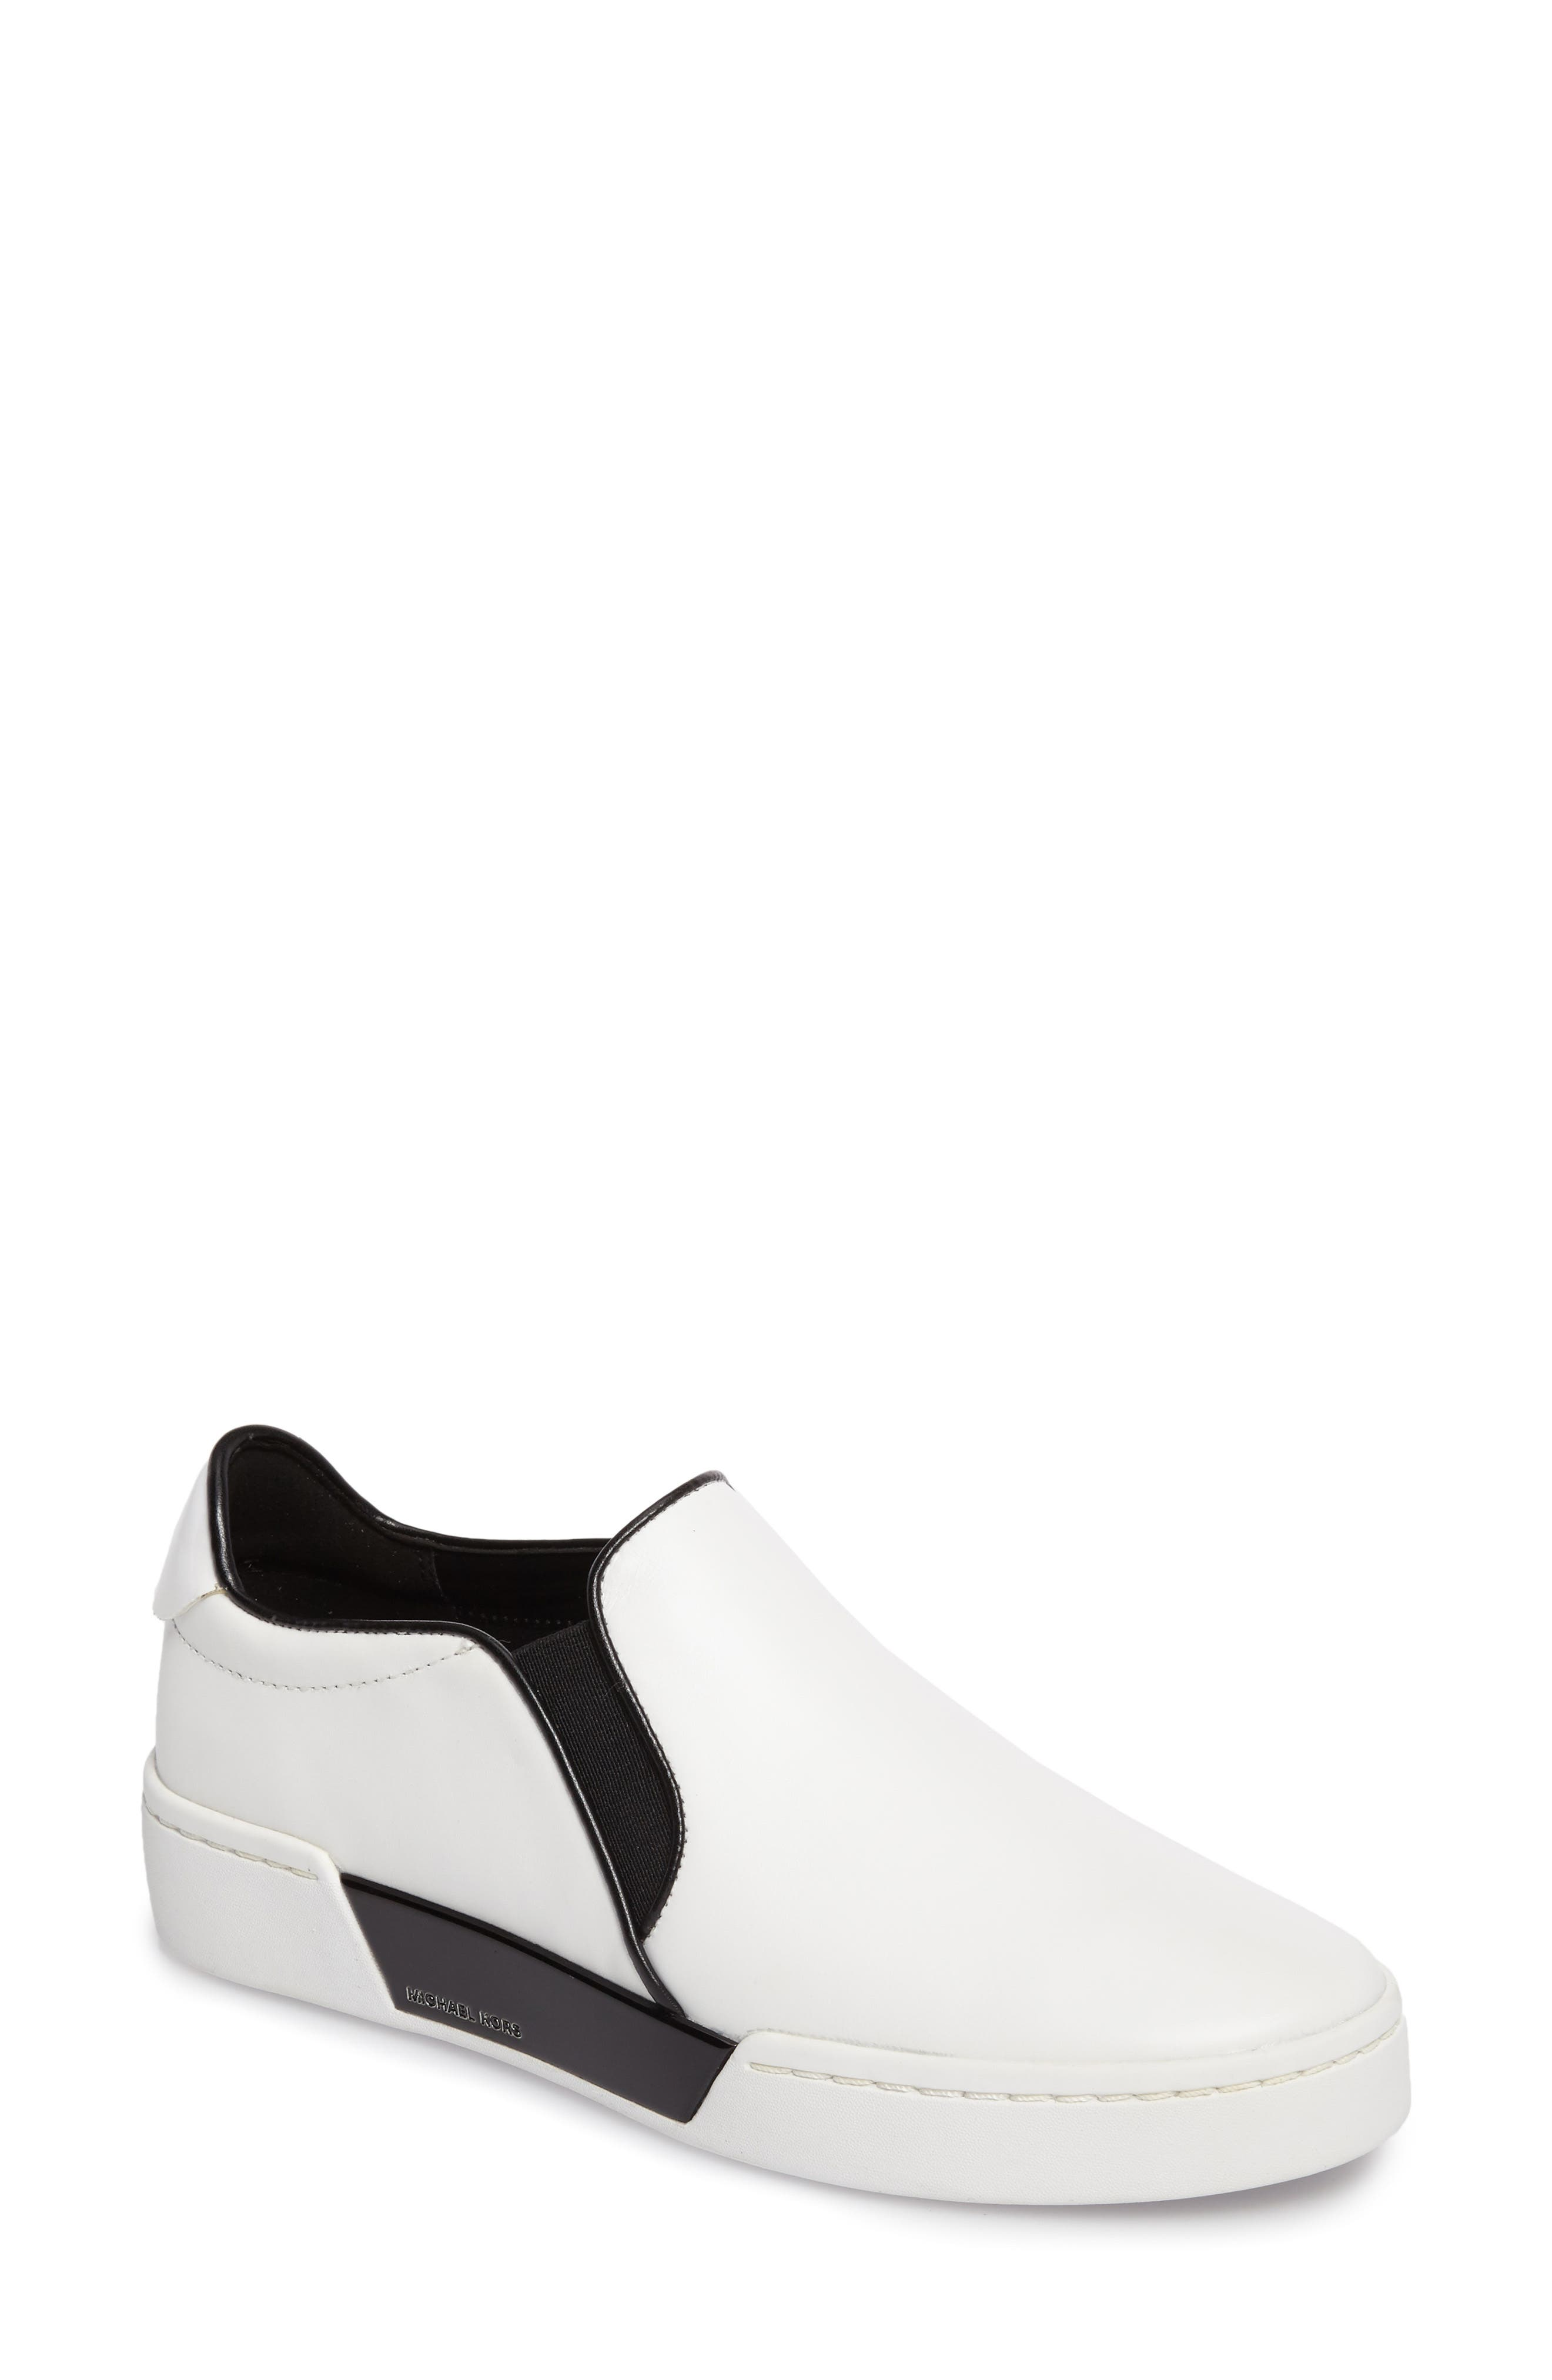 Brenden Slip-On,                         Main,                         color, Optic White